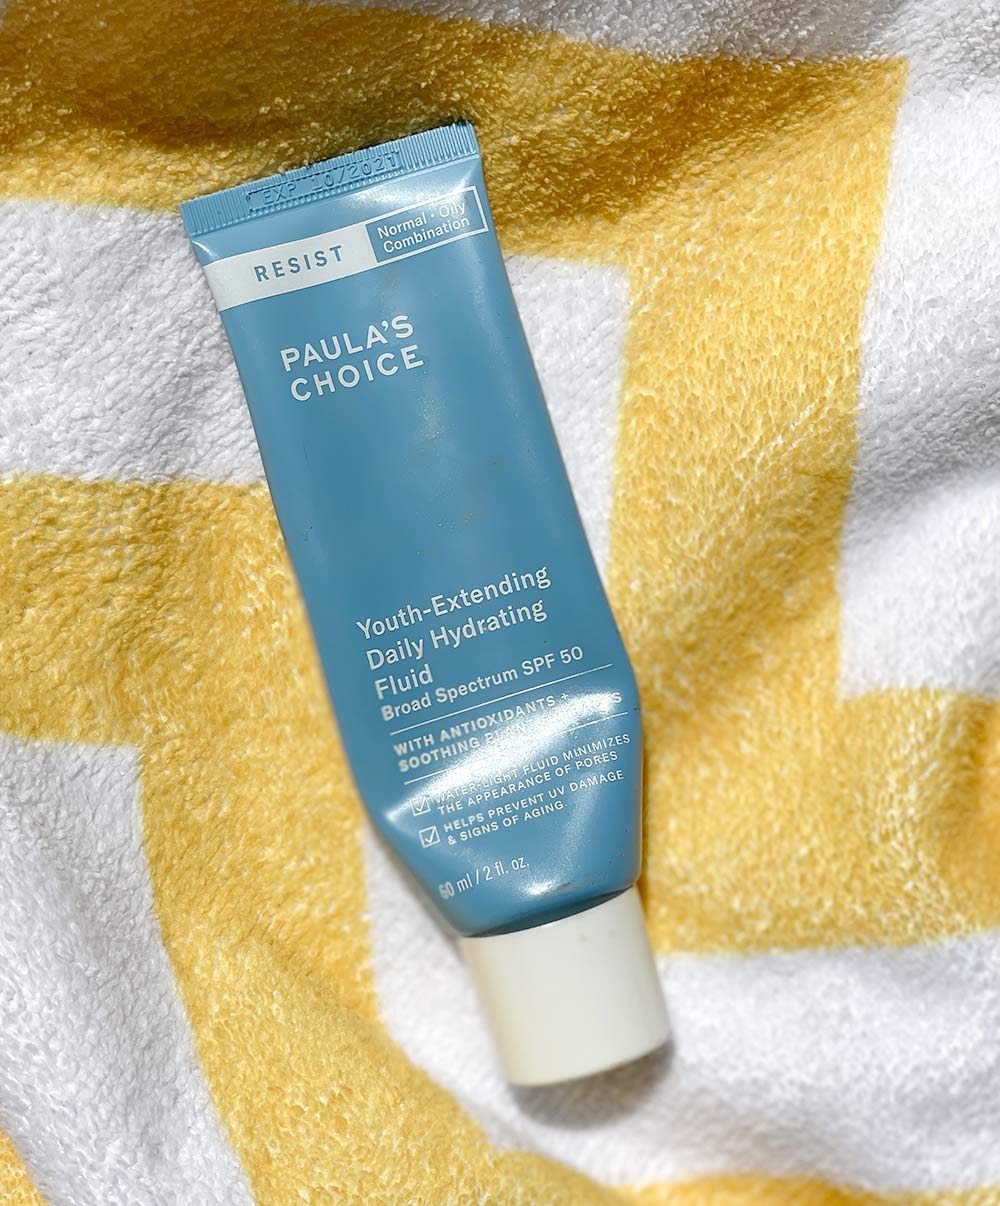 paulas choice resist sunscreen